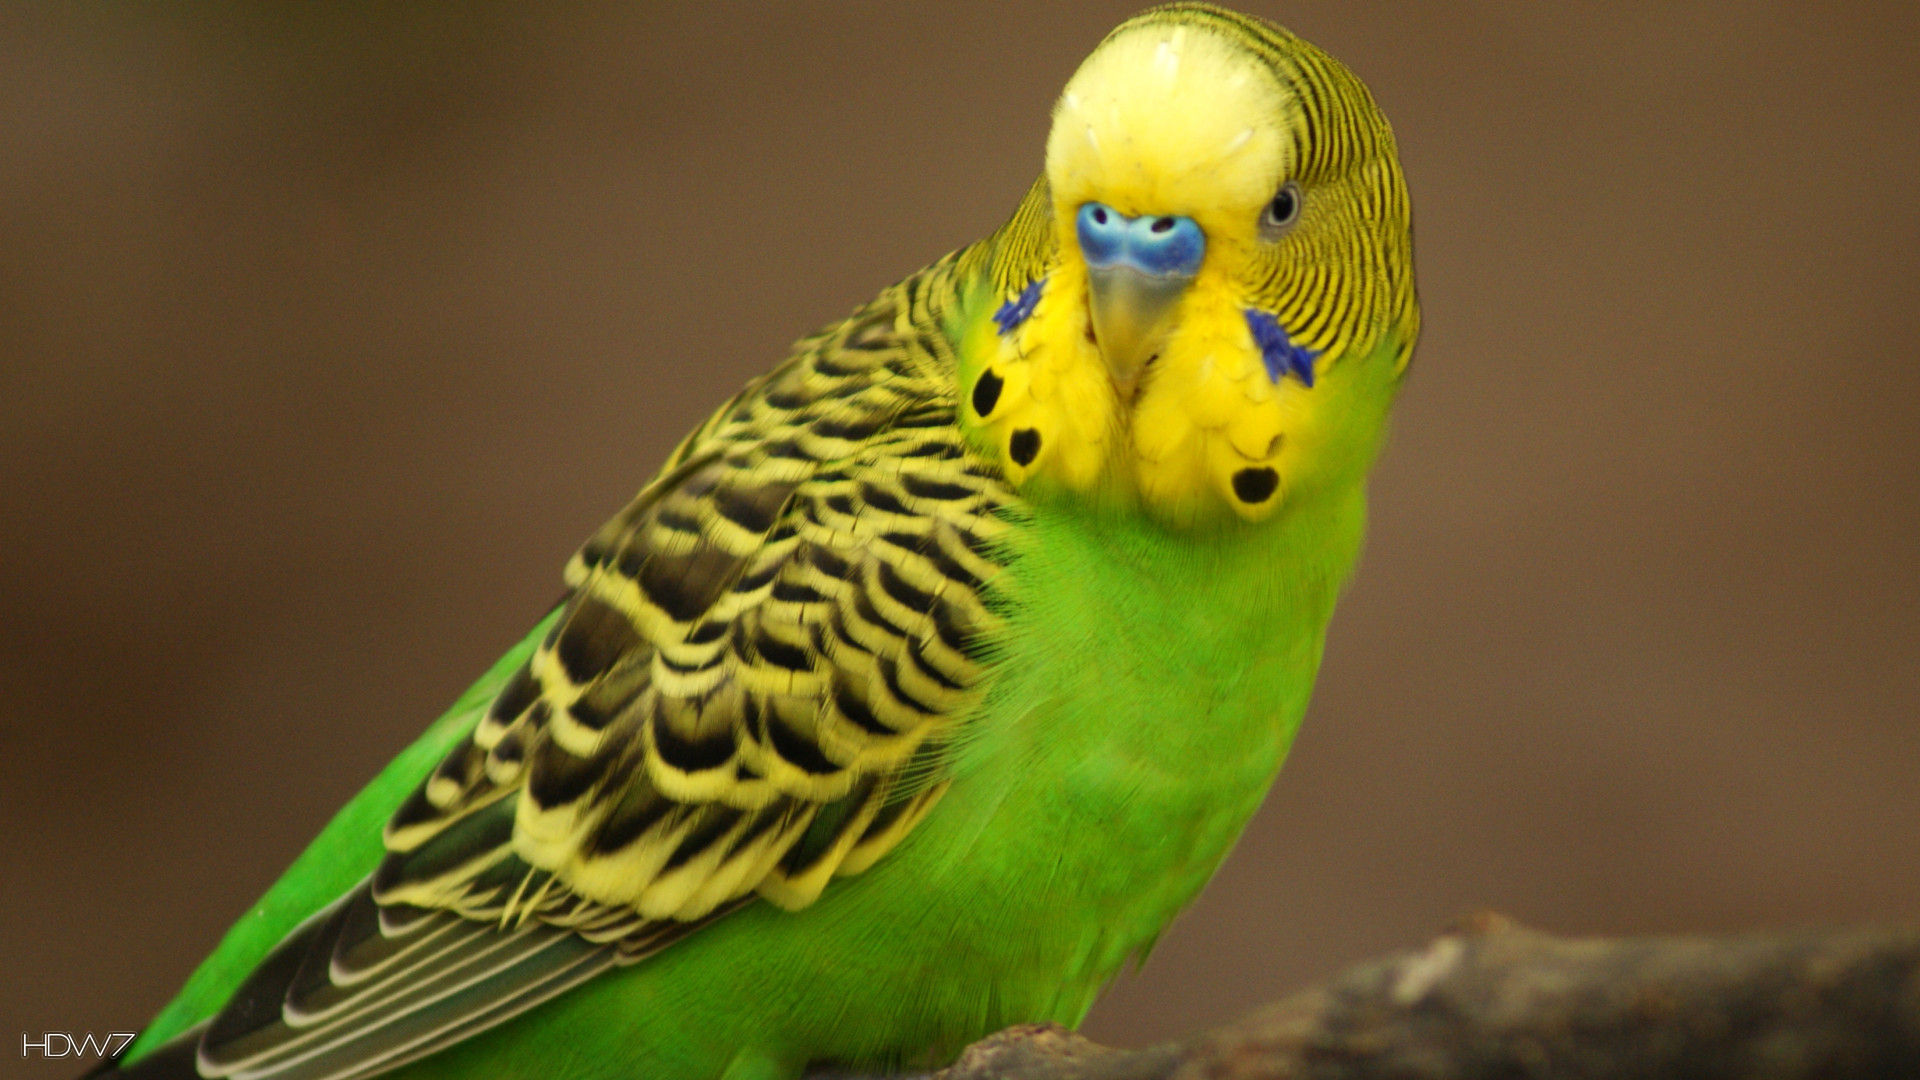 Budgie Small Parrot Bird Hd Wallpaper Gallery 372